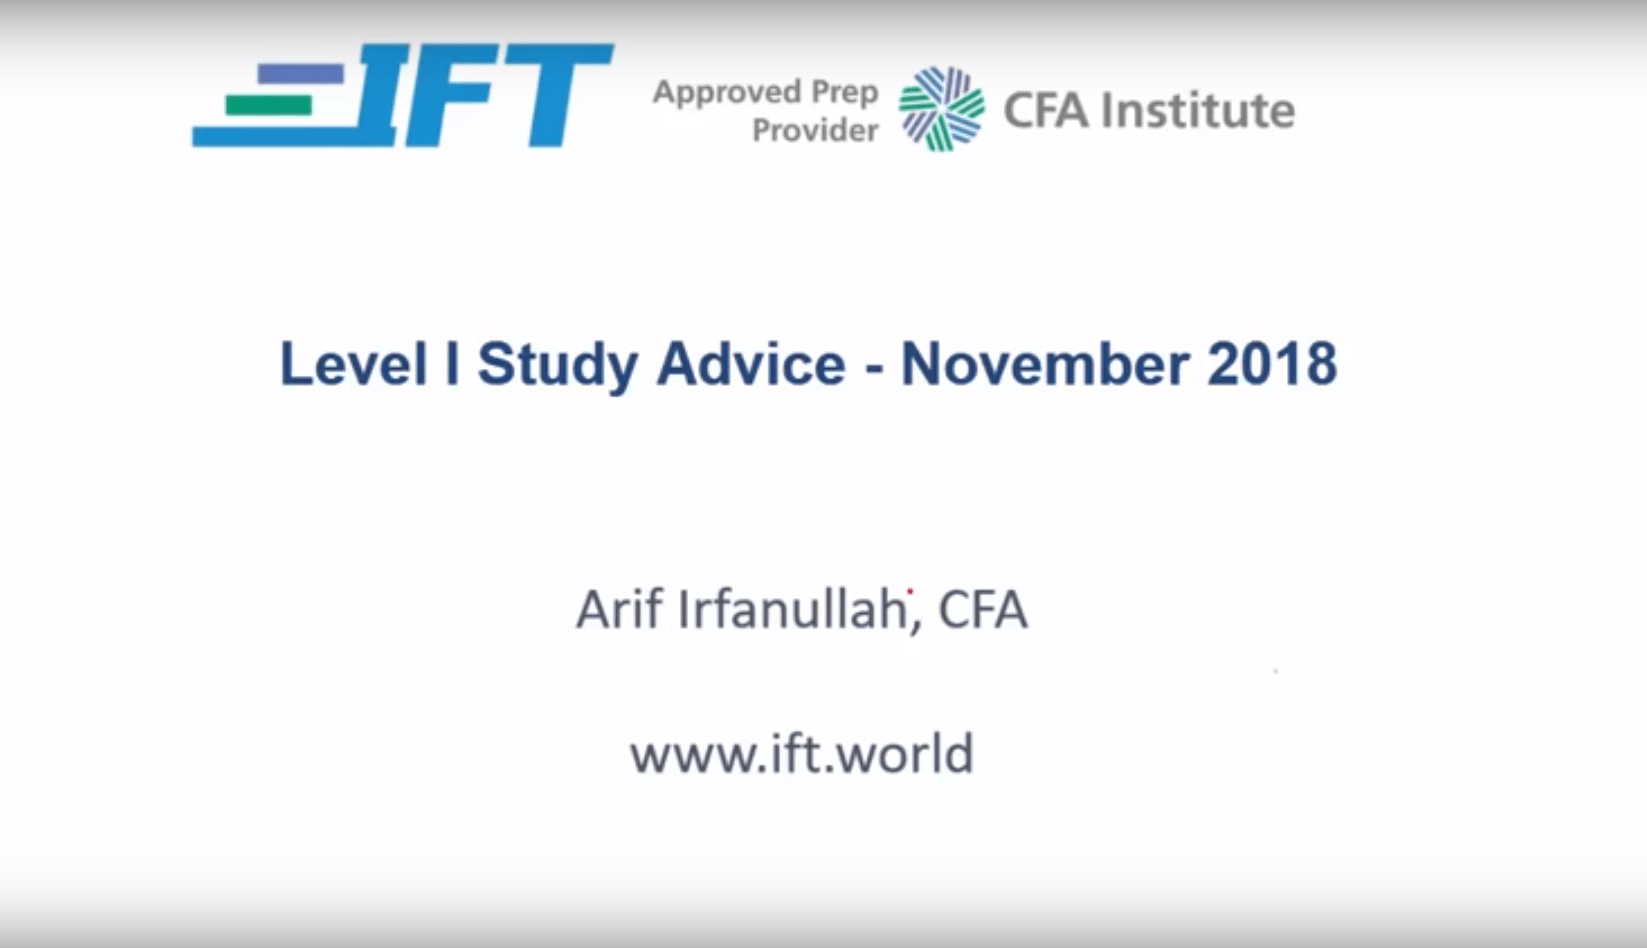 Level I Exam: November 2018 Study Advice